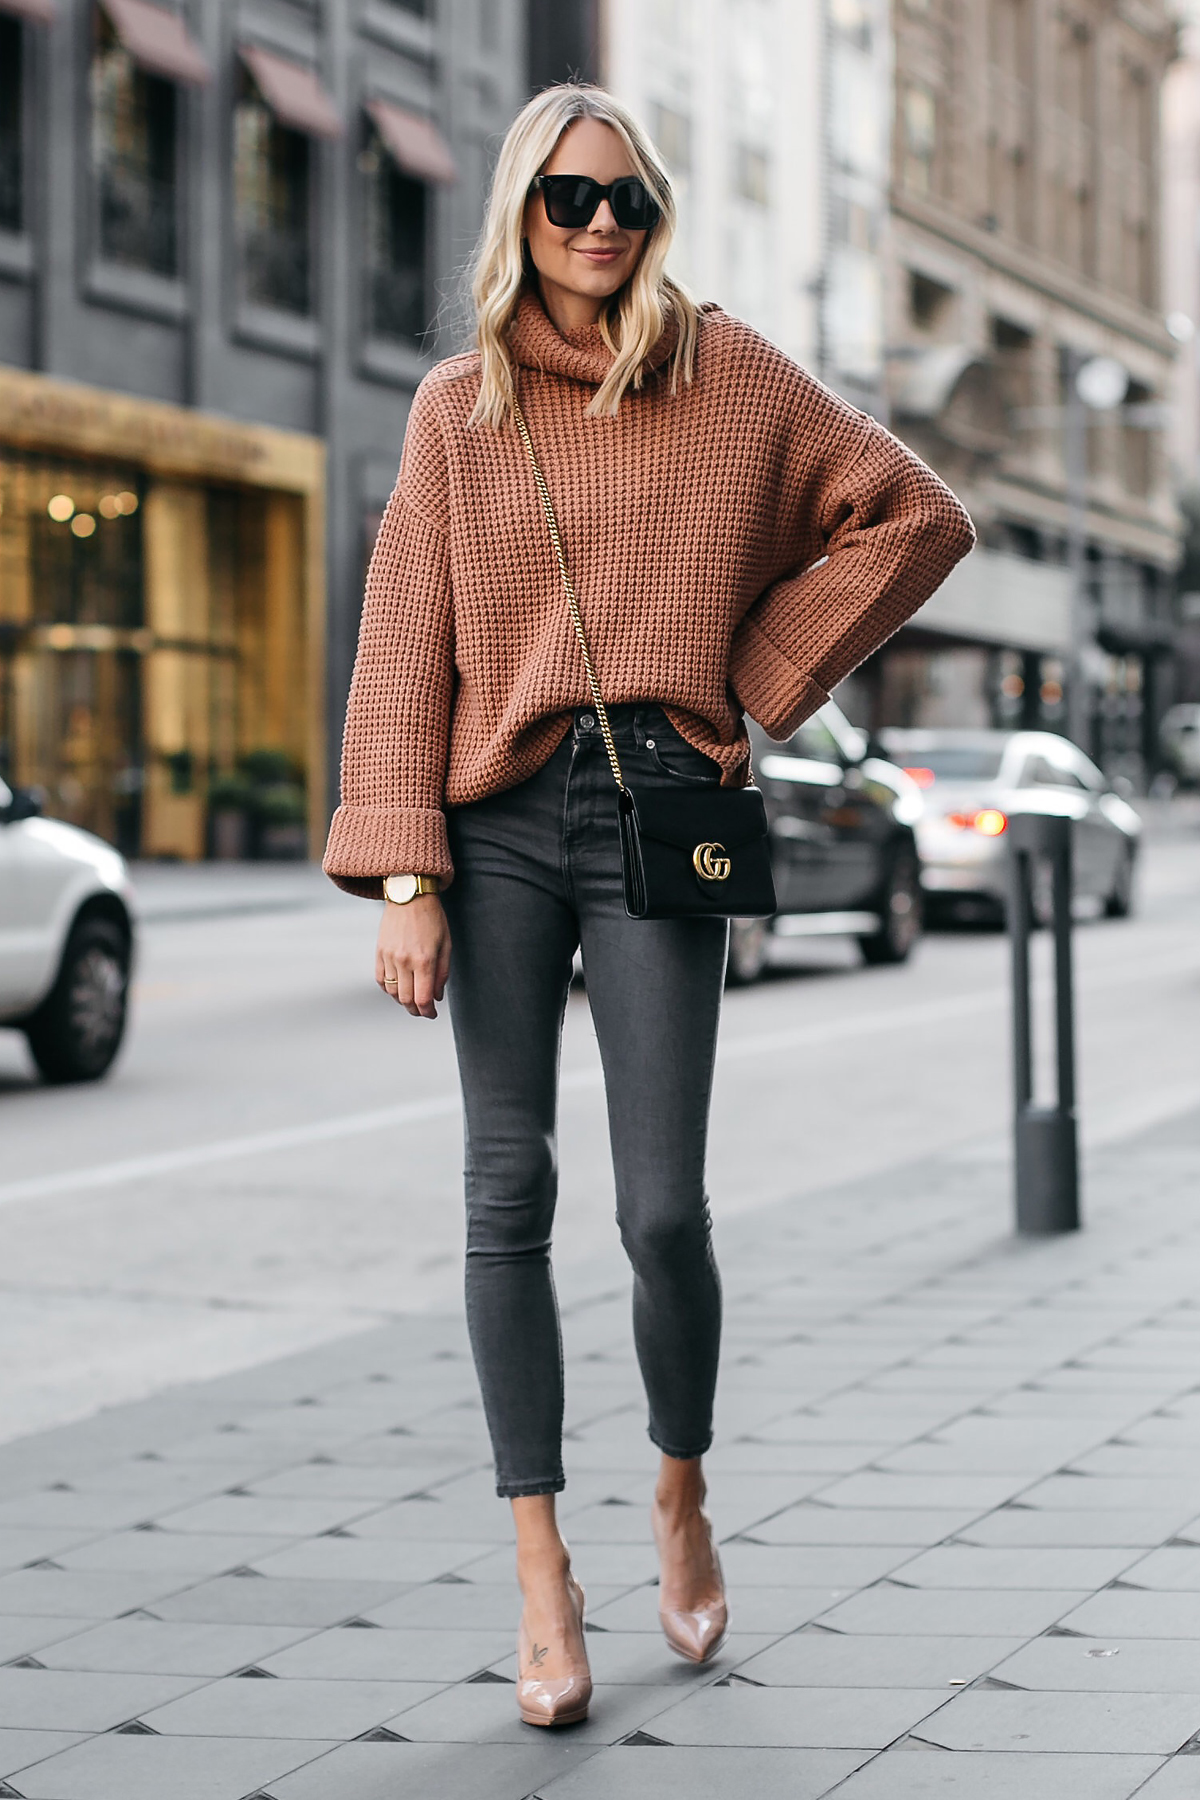 Fashion Jackson Oversized Sweater Free People Park City Pullover Tan Sweater  Grey Skinny Jeans Christian Louboutin